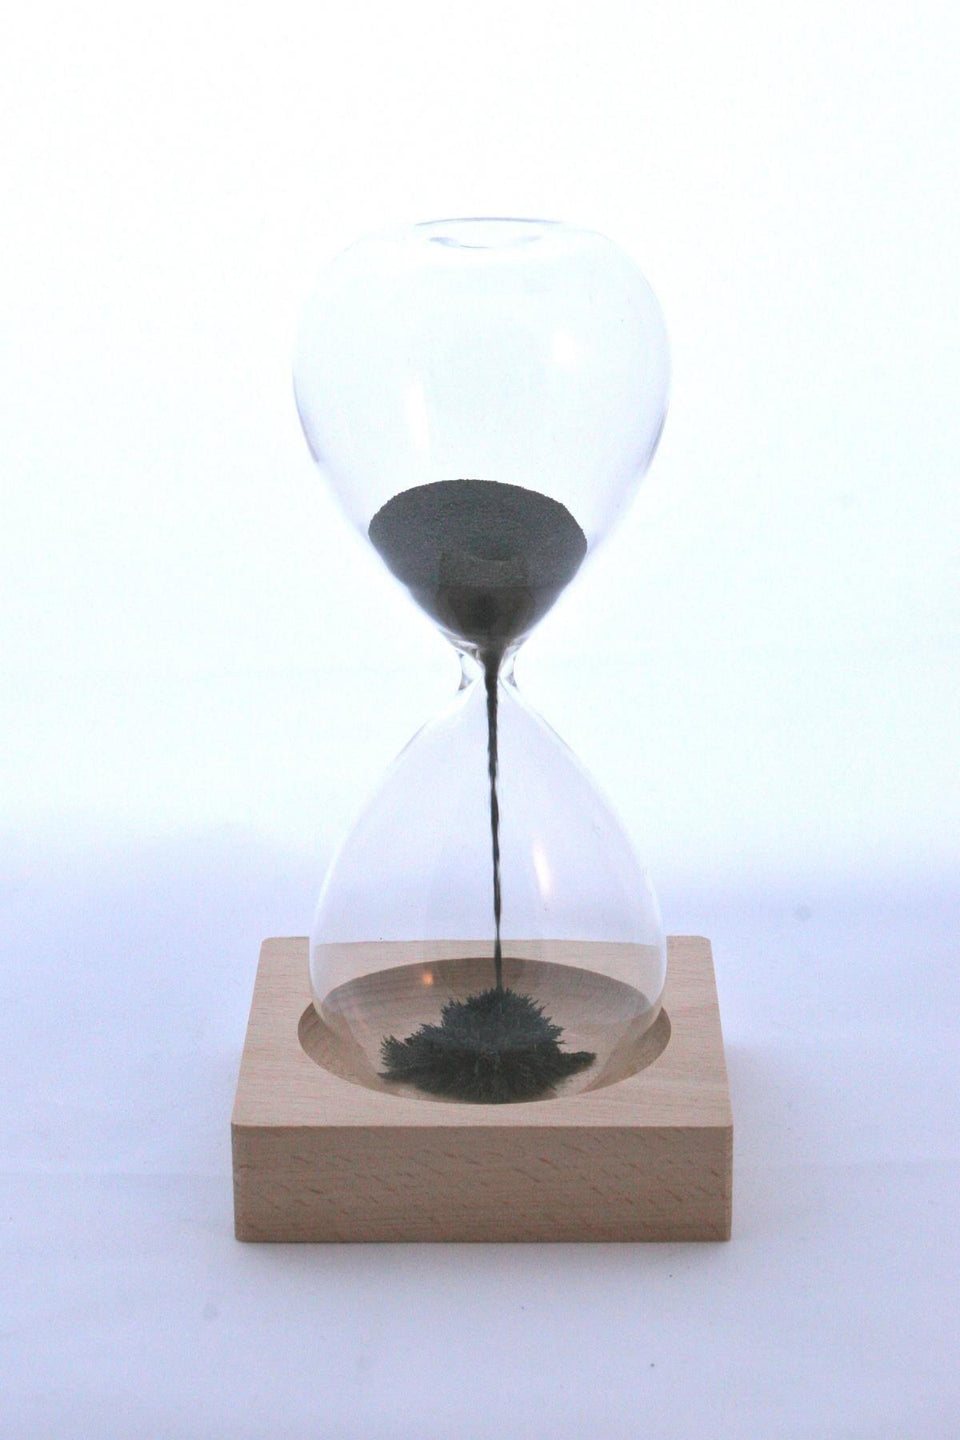 Magentic Sand Timer